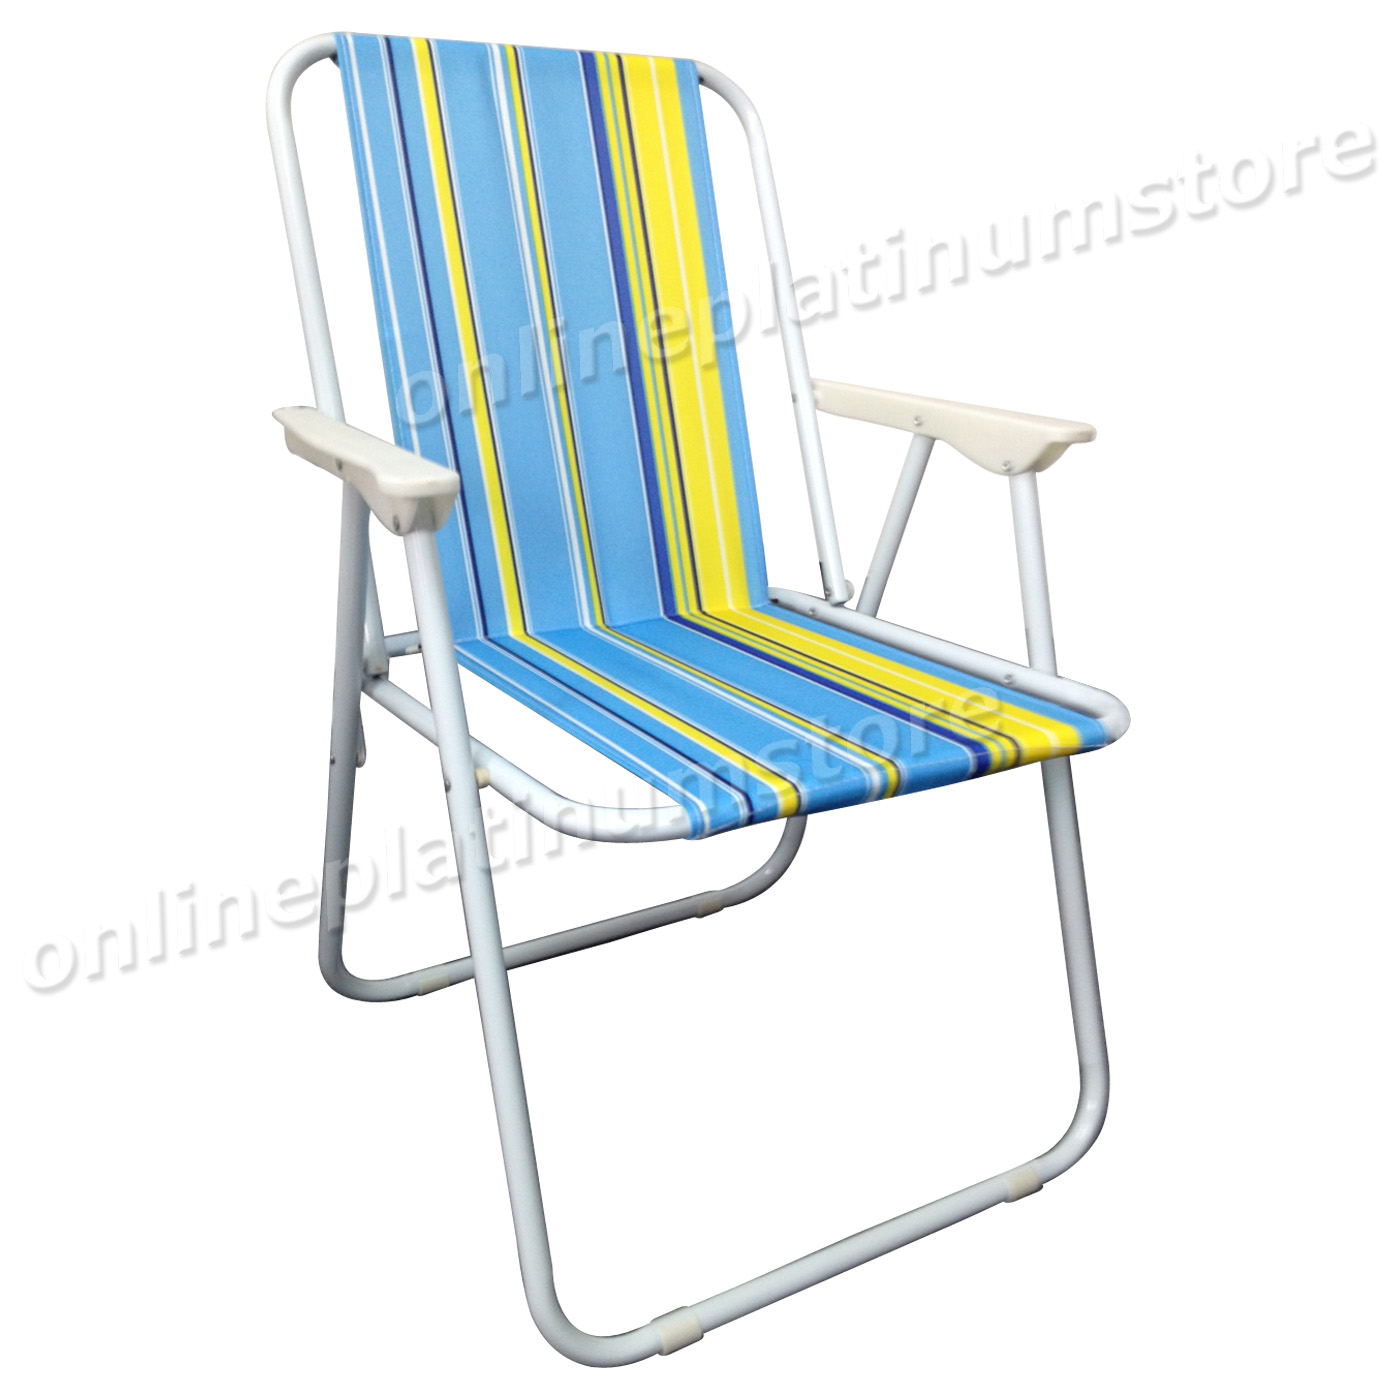 Outdoor Folding Chairs Set Of 2 X Lightweight Portable Outdoor Garden Camping